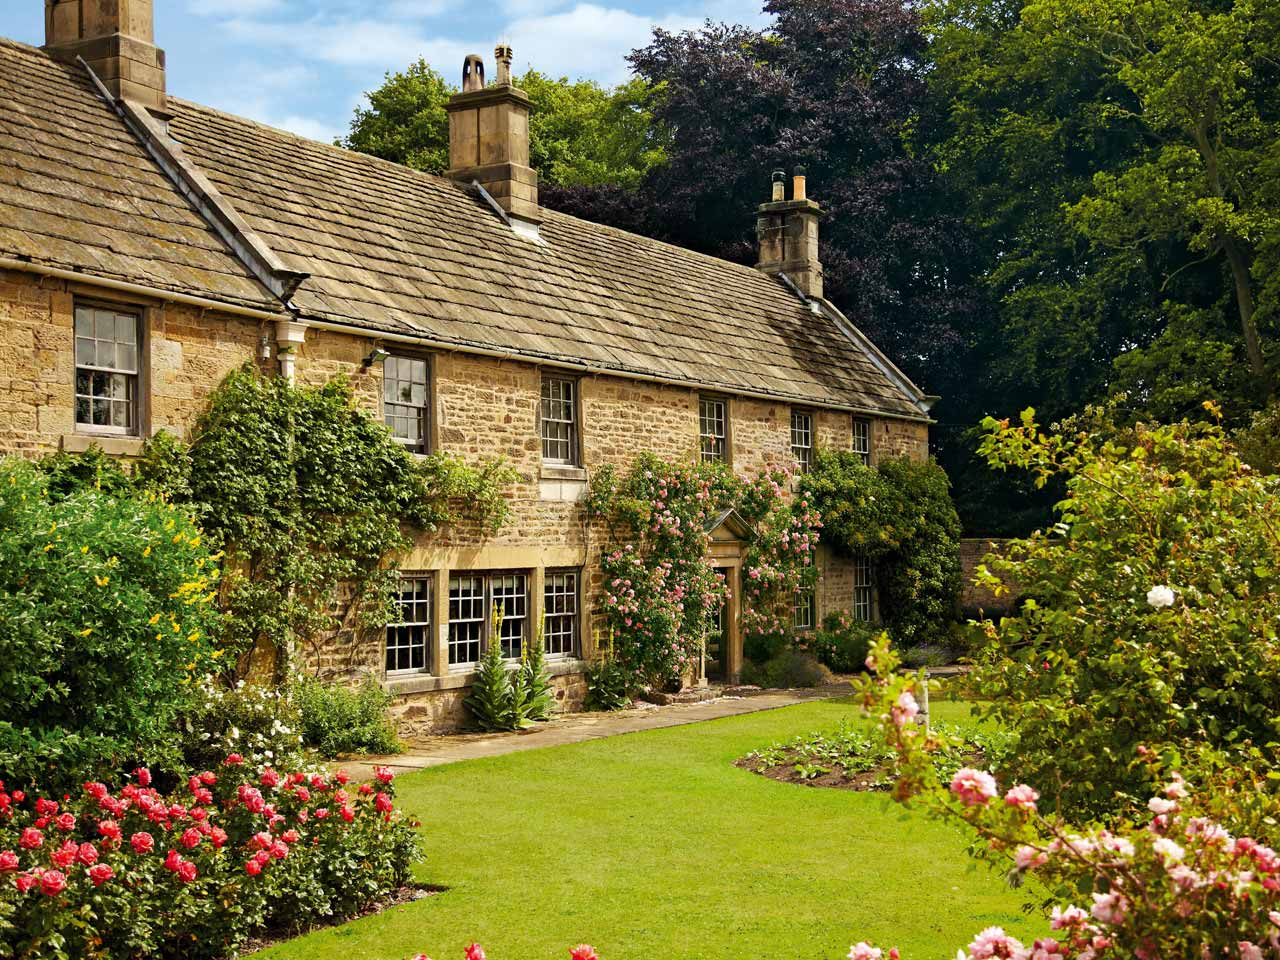 Five of the loveliest cottage gardens - Saga